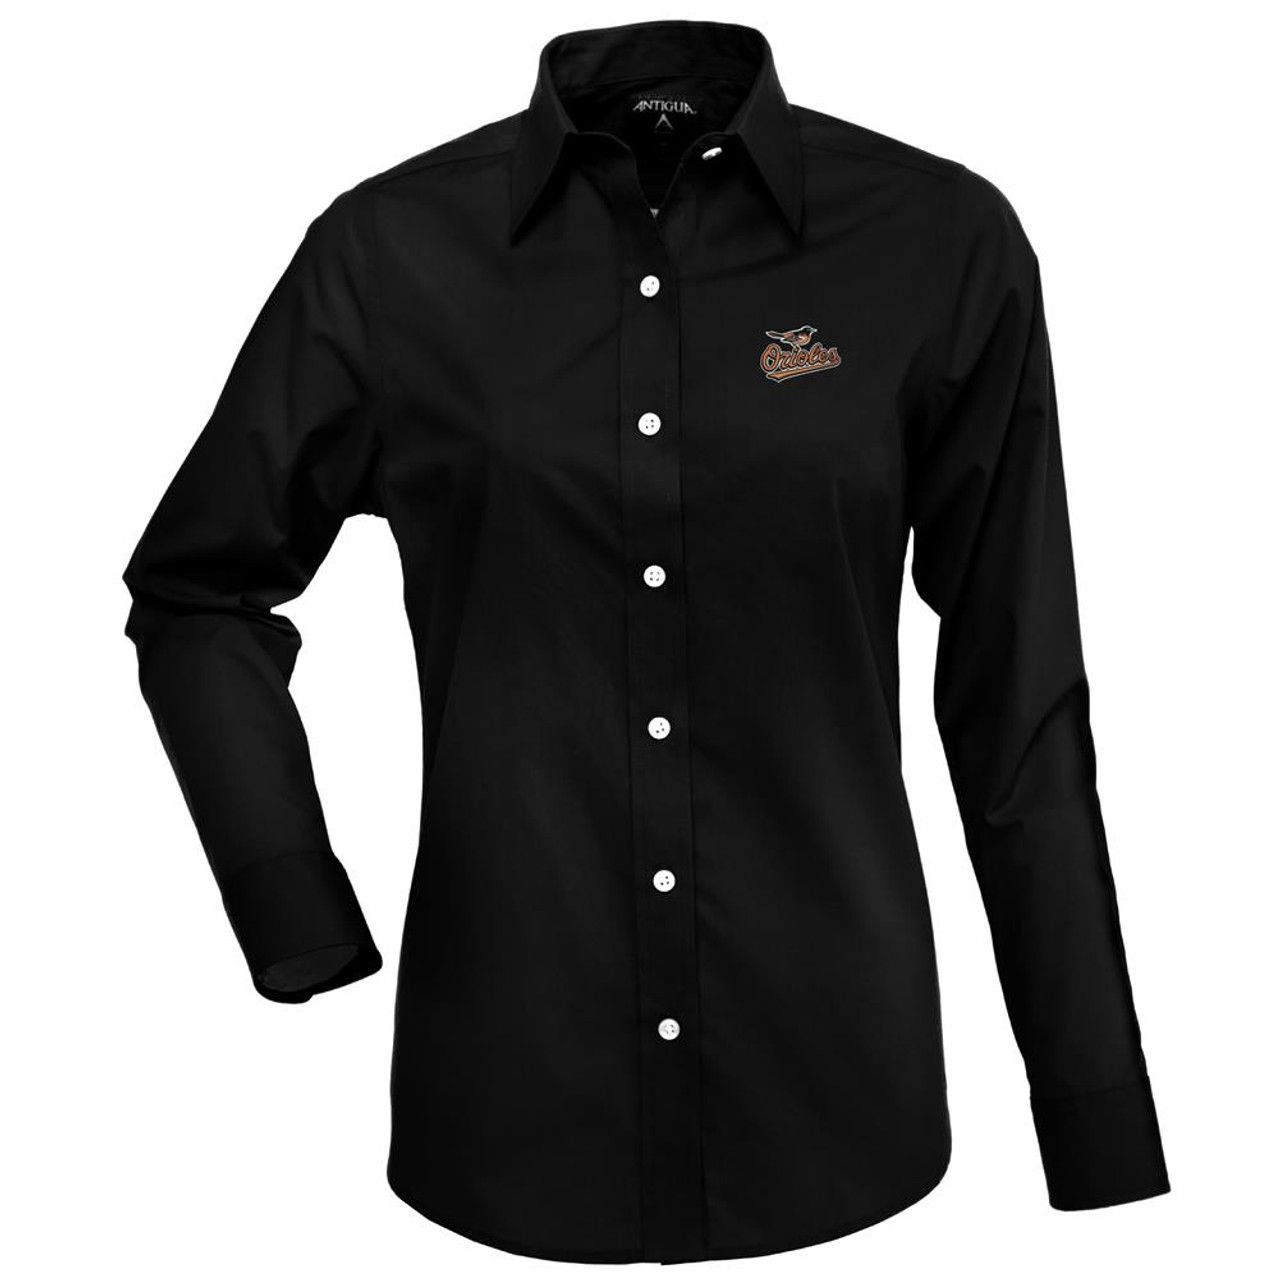 Baltimore Orioles Women's Long Sleeve Dress Shirt